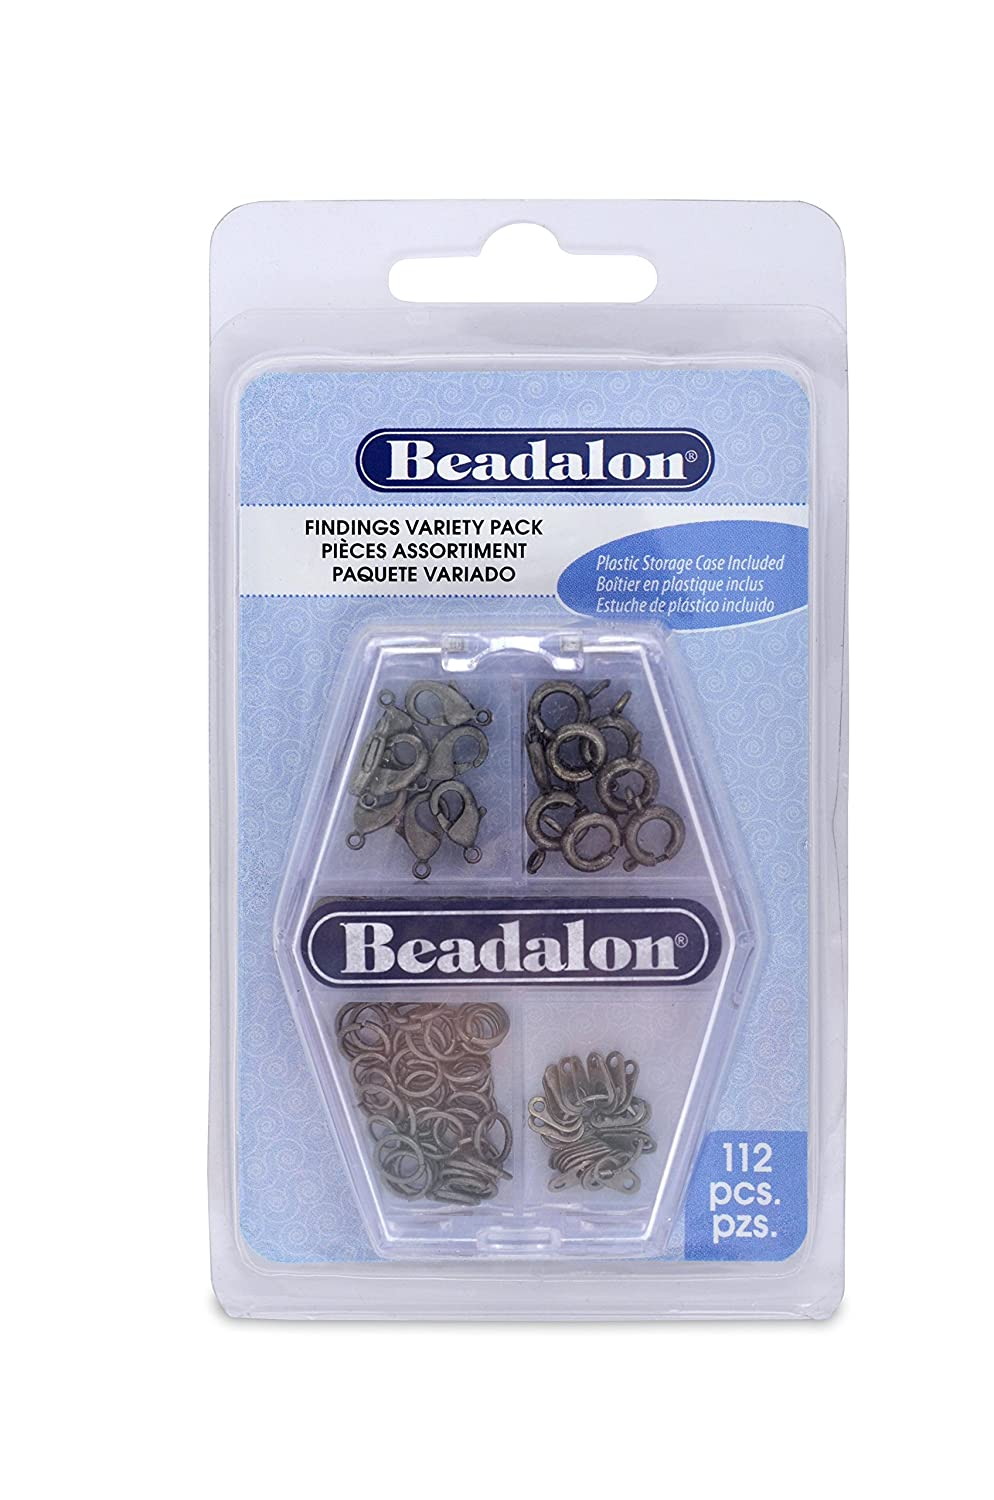 Amazon.com: Beadalon (1-Pack) Findings Variety Pack 73 Jump ...